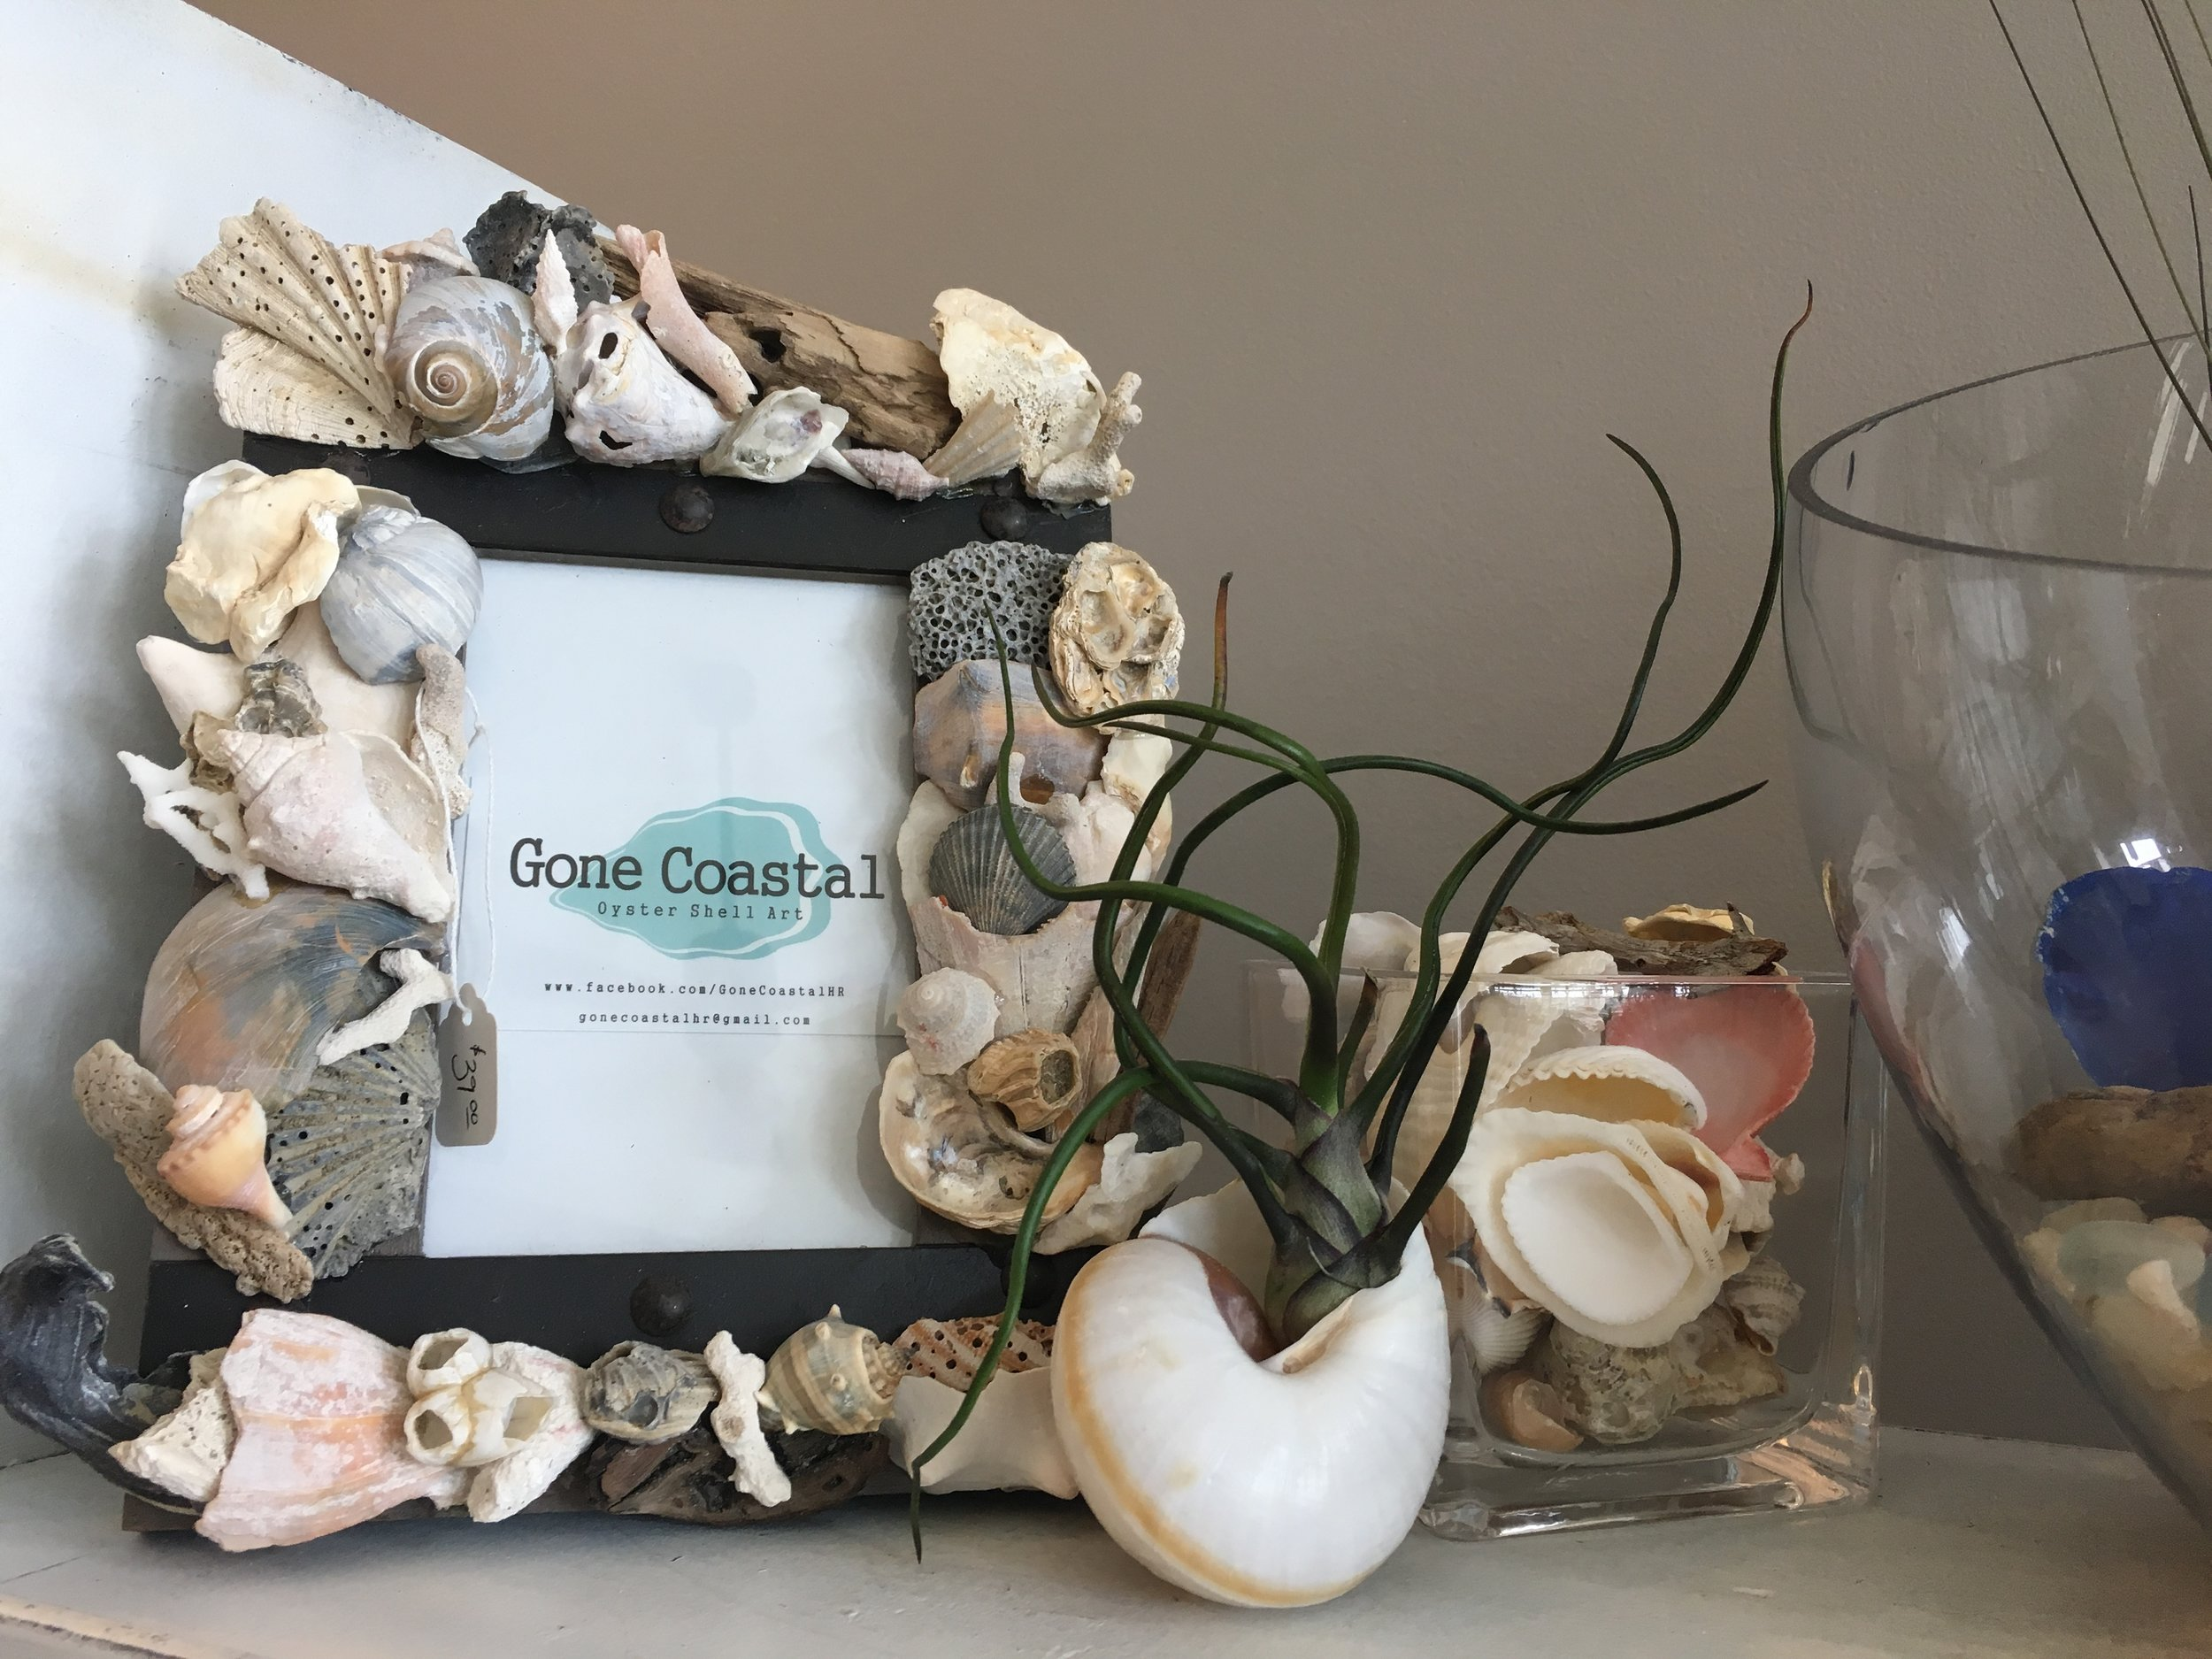 Gone Coastal - Beautiful hand-made shell Items perfect to compliment any home or office.